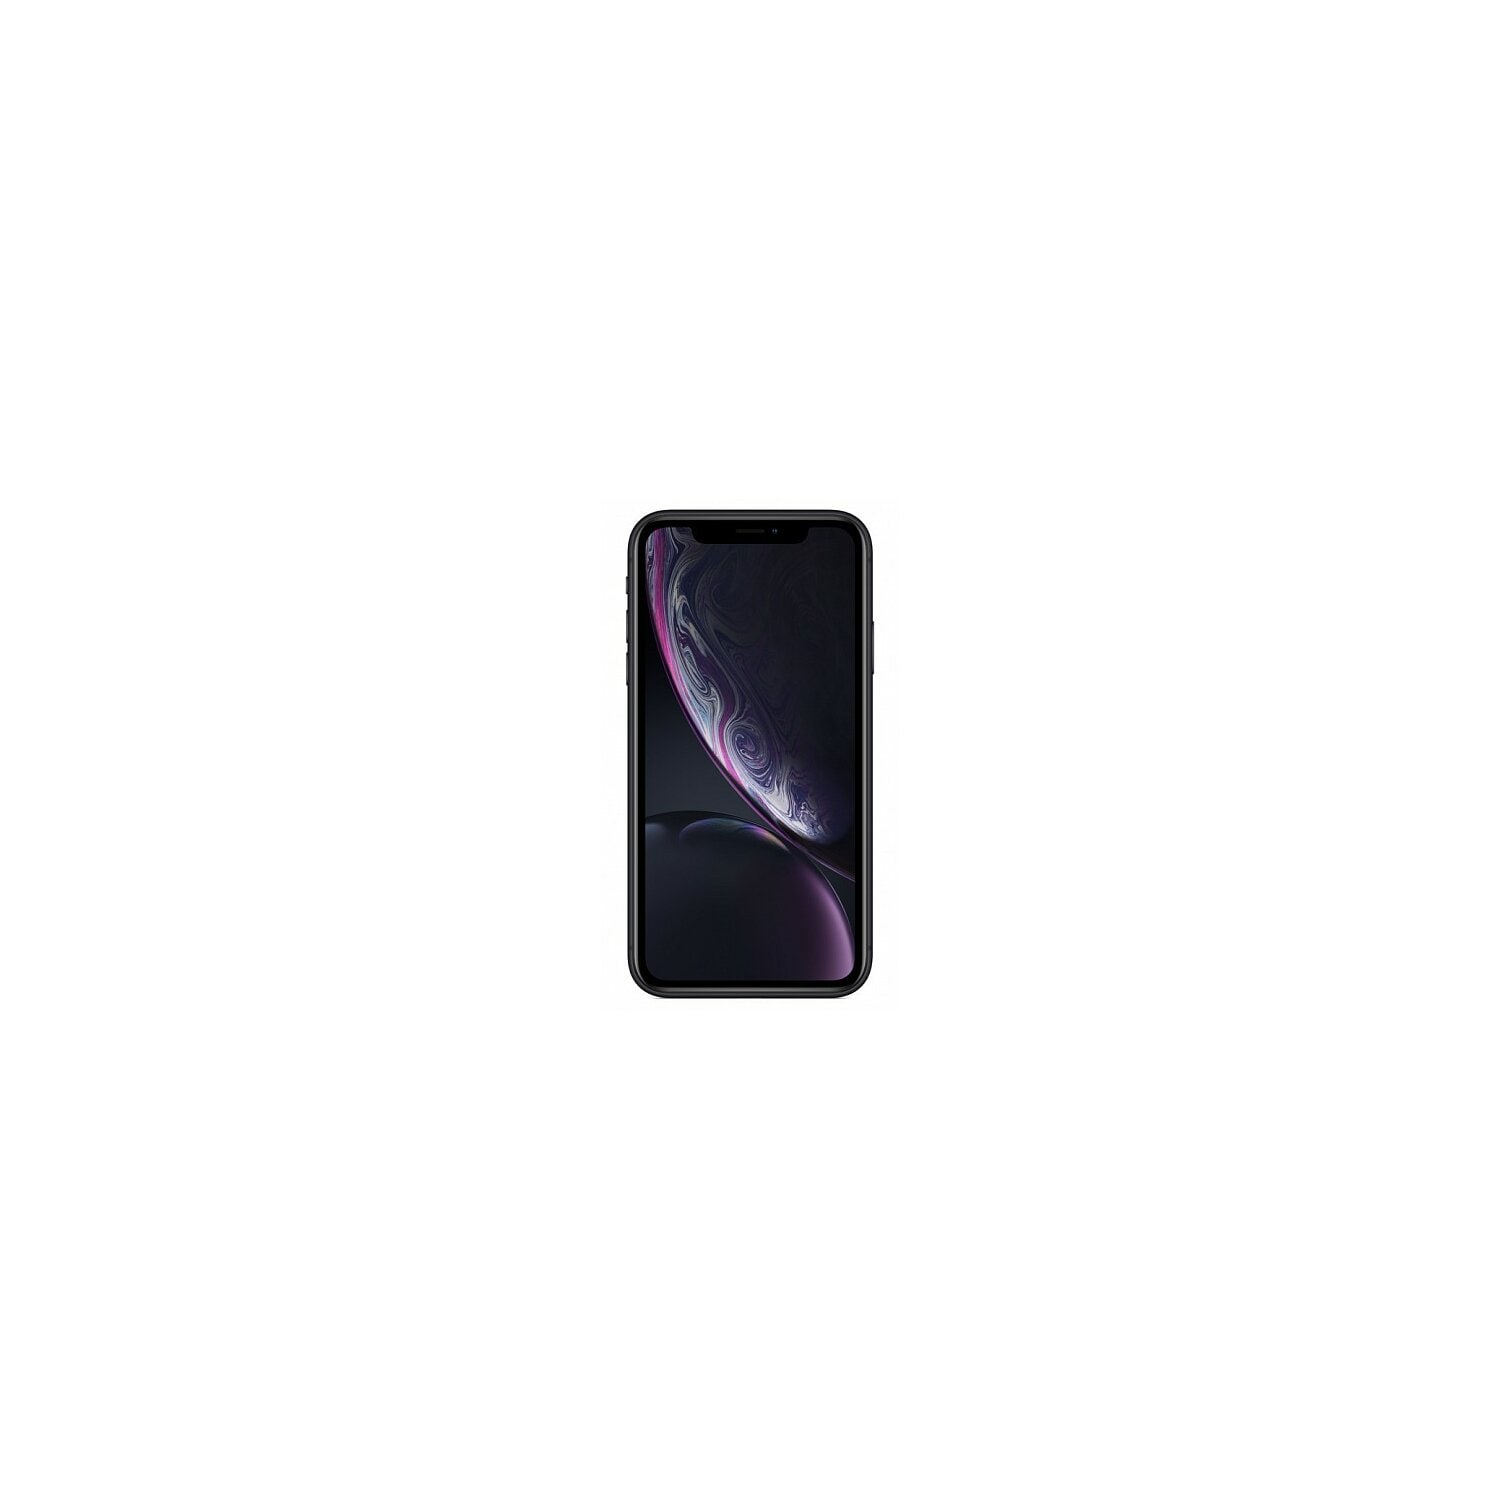 Smartfon APPLE iPhone XR 64GB Czarny MRY42PM/A